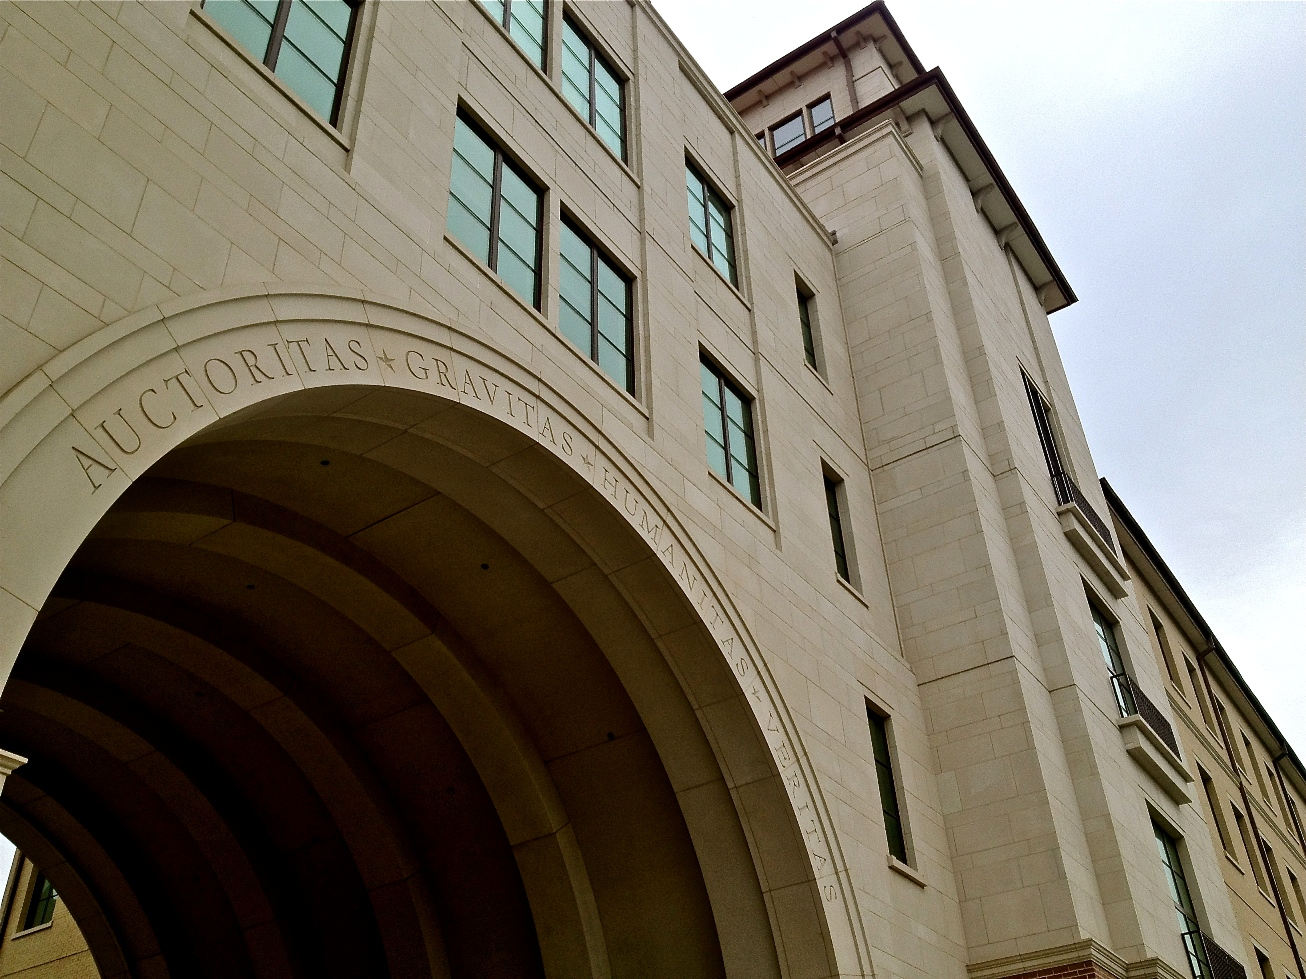 Texas State University | Building Veneer, Cladding using Architectural cast stone, architectural precast concrete